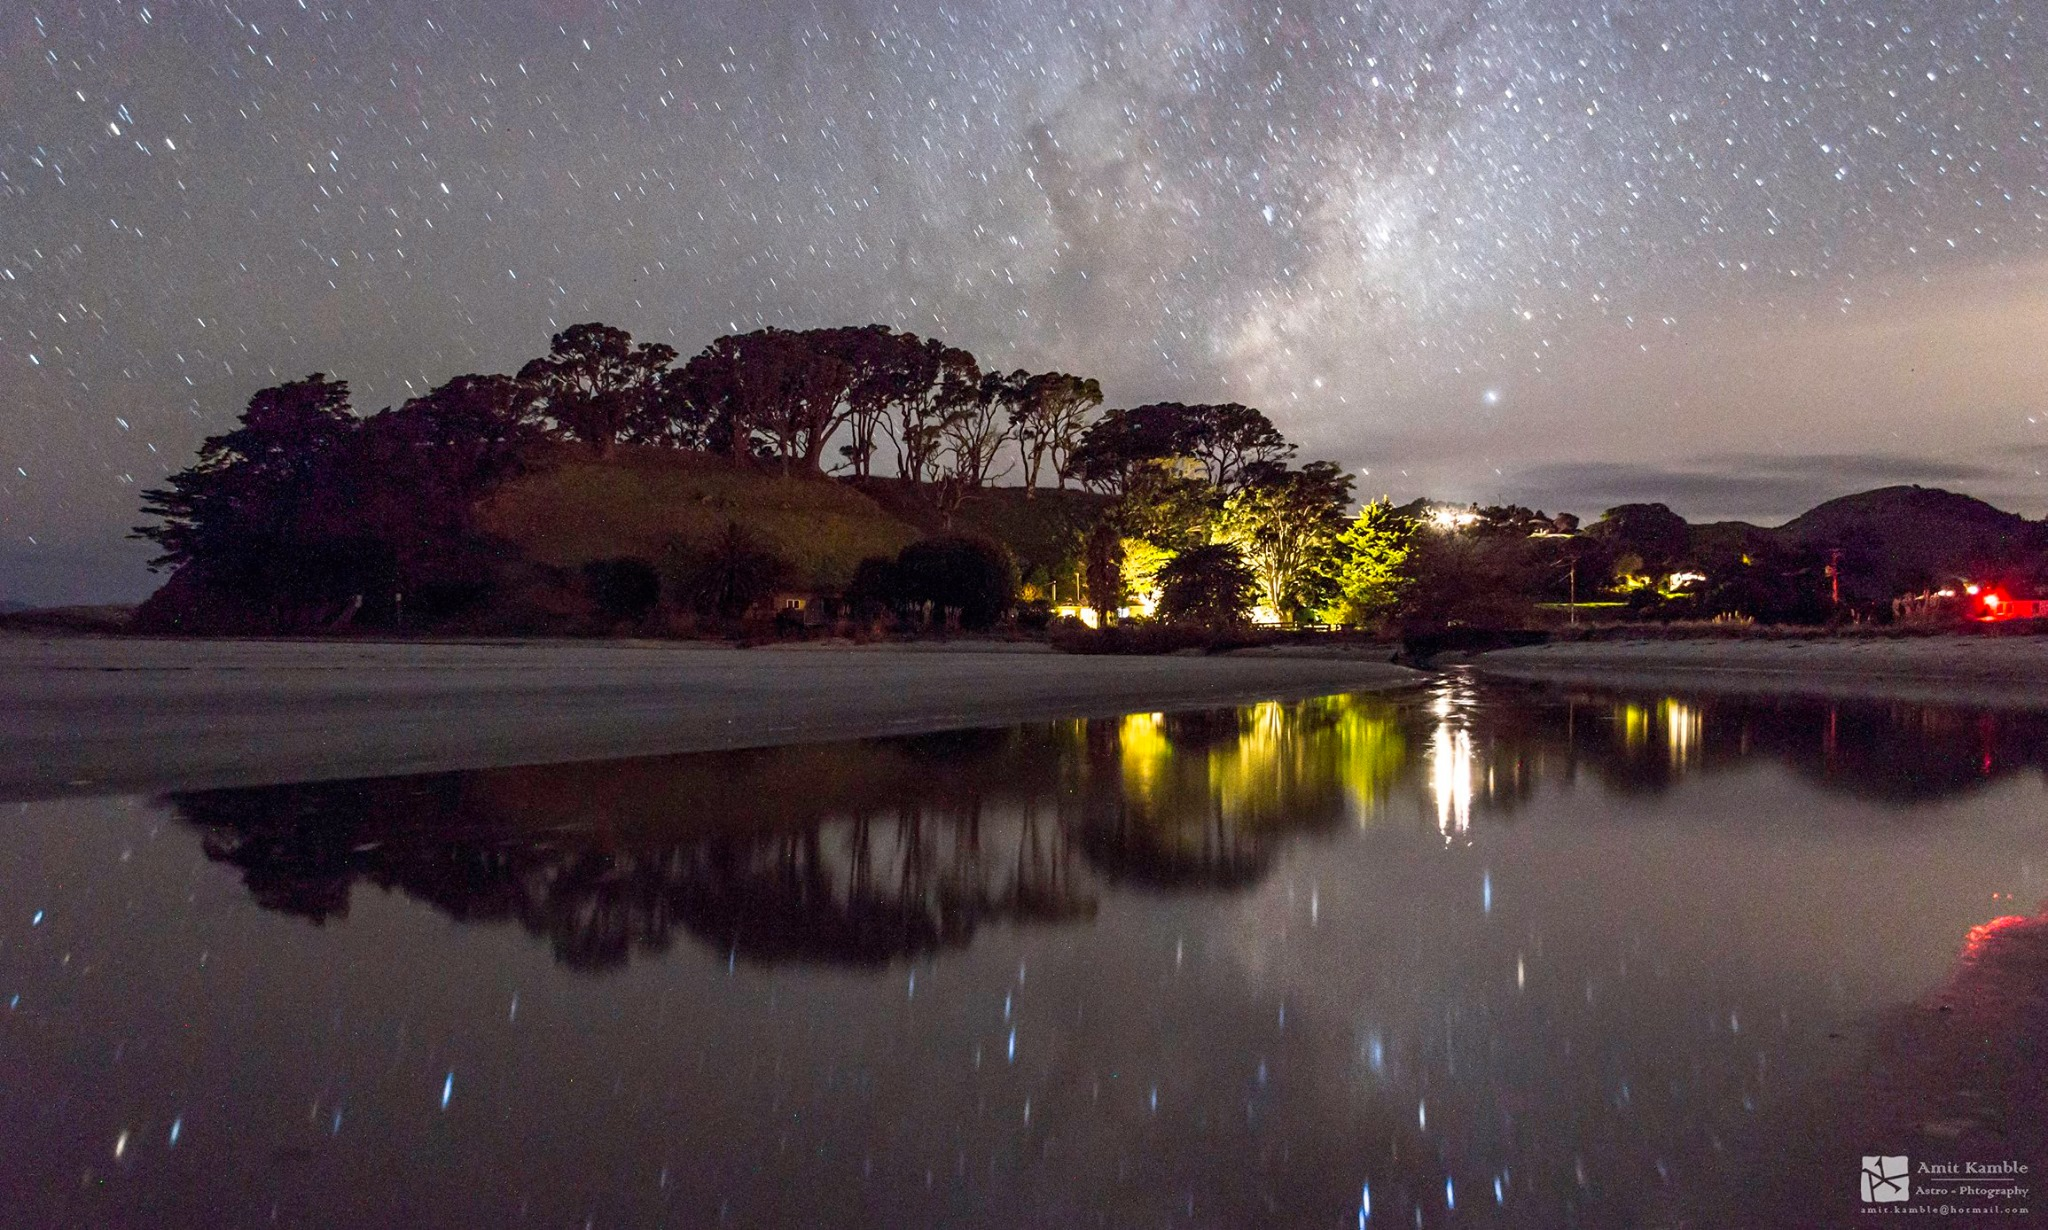 reflections-milky-way-kamble.jpg